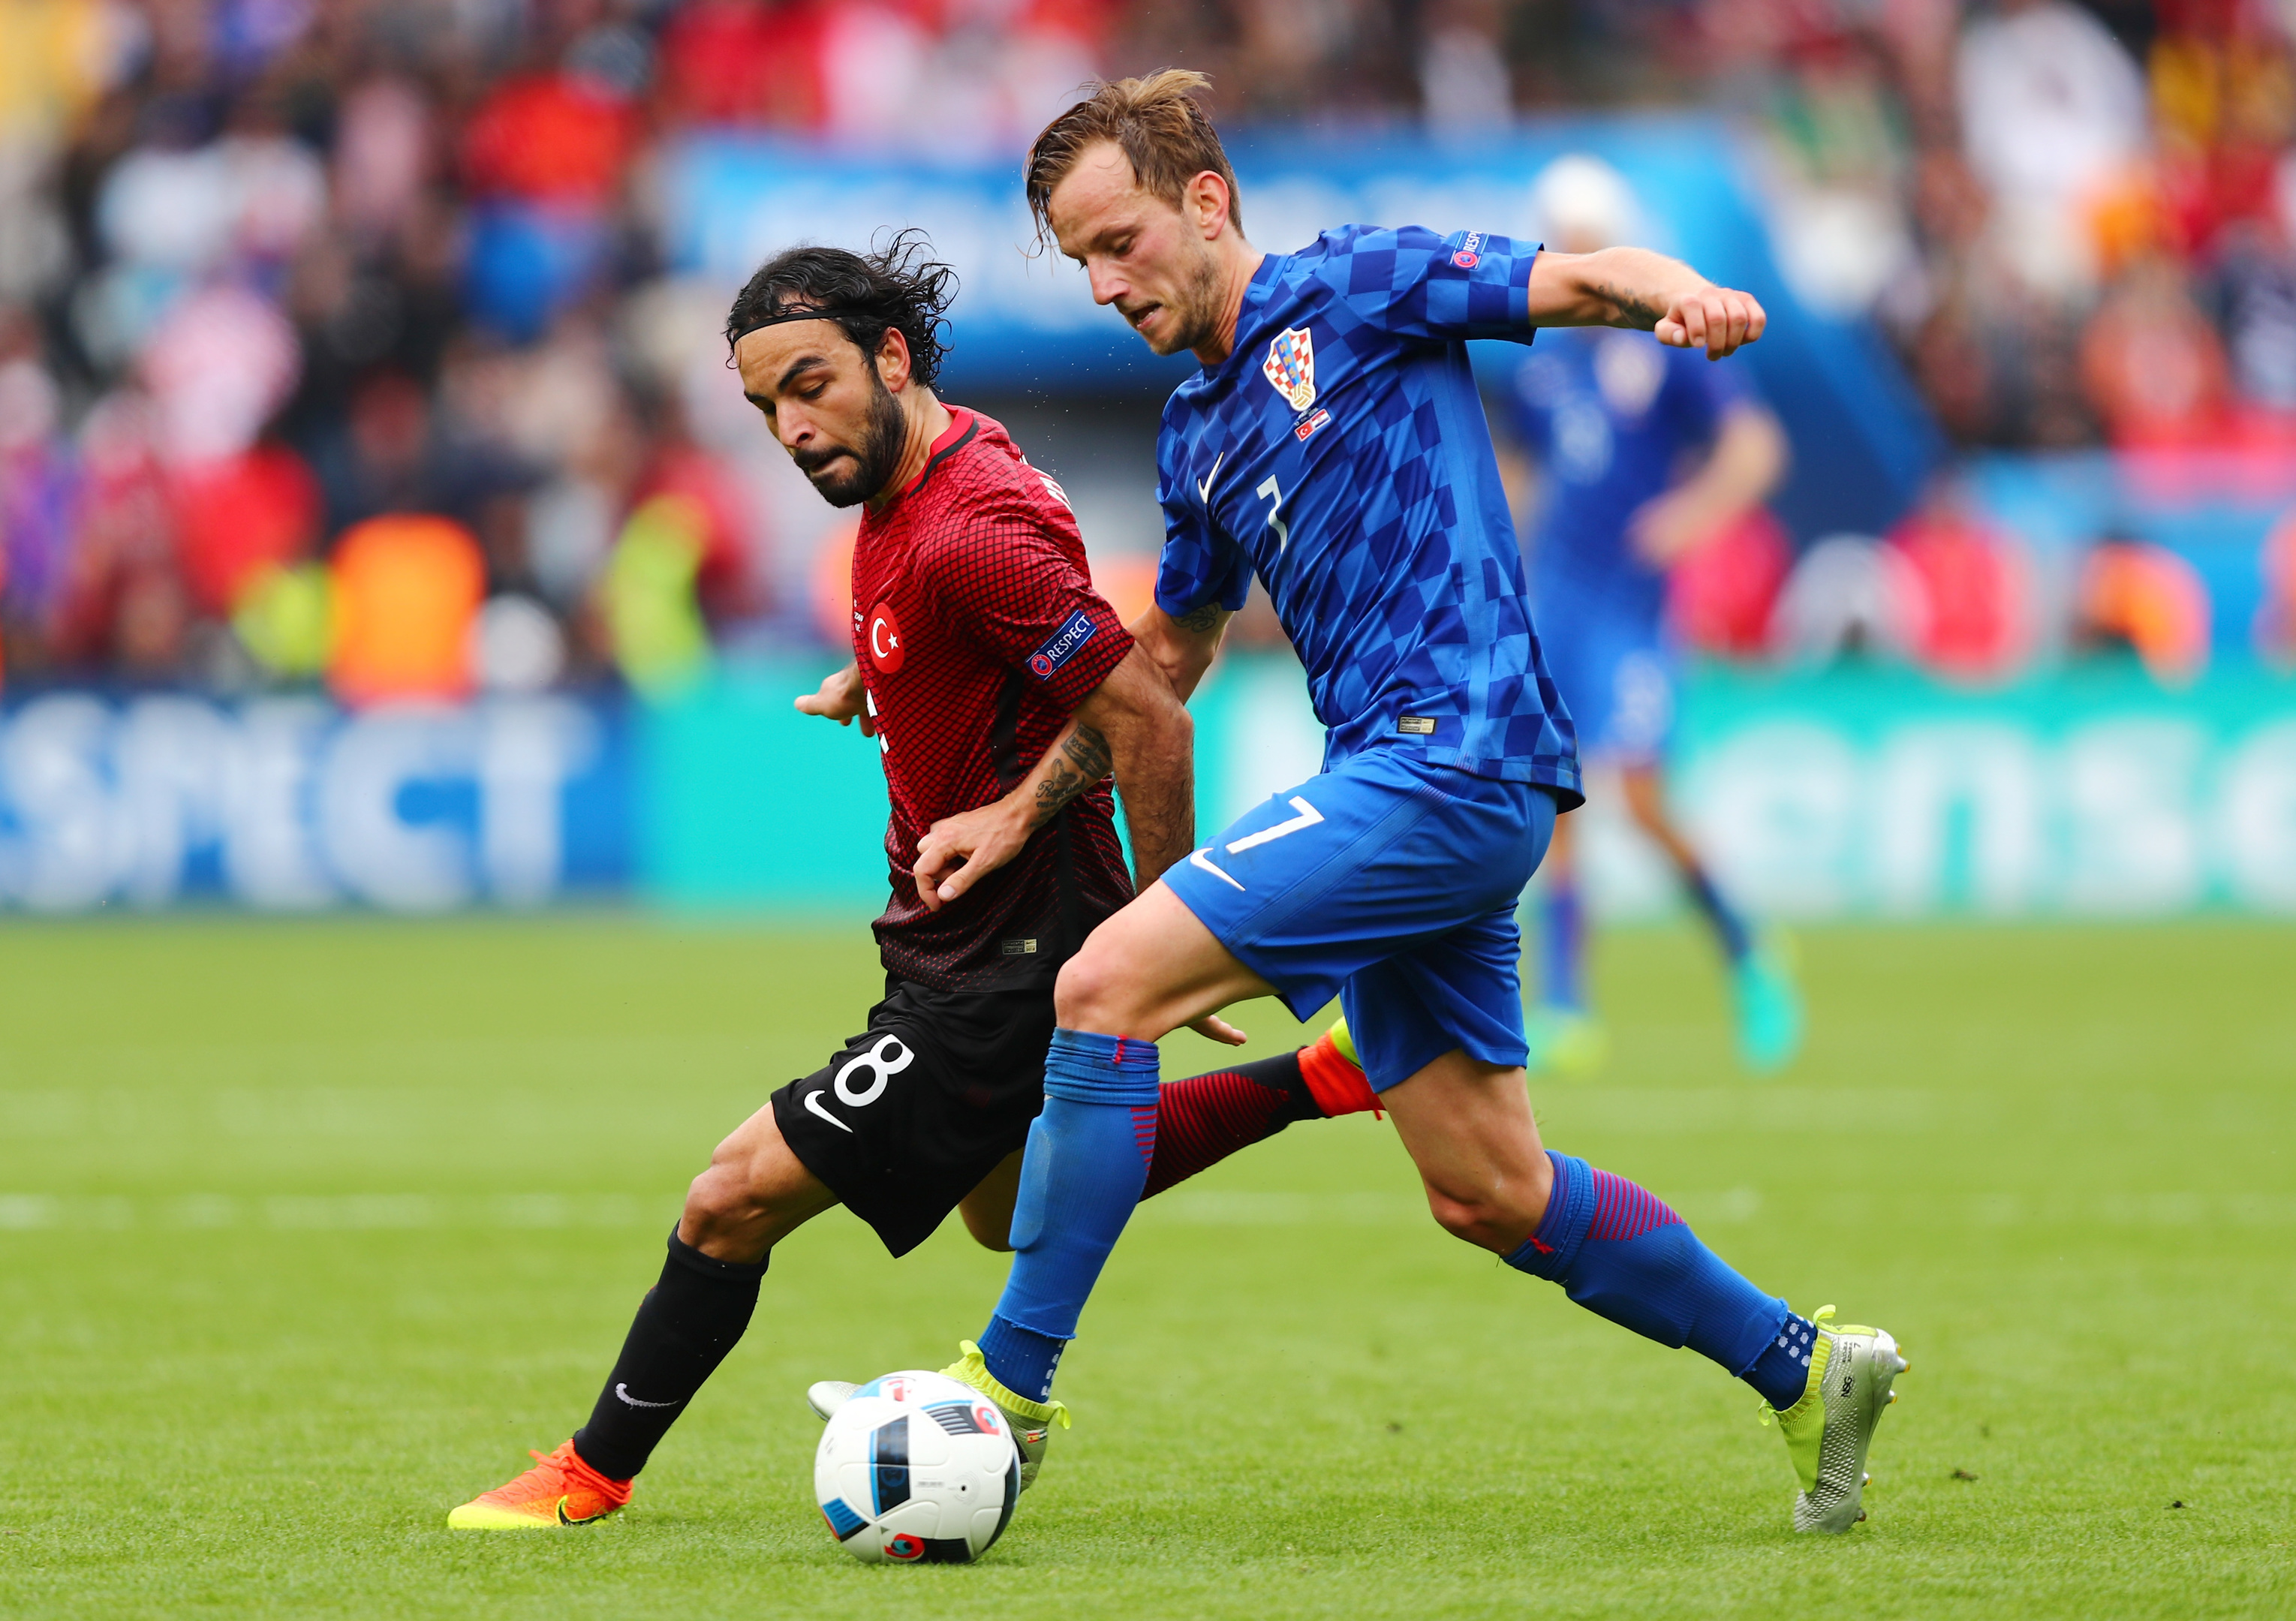 Ivan Rakitic of Croatia (in blue) and Selcuk Inan of Turkey compete for the ball during the UEFA EURO 2016 Group D match (Clive Rose/Getty Images)